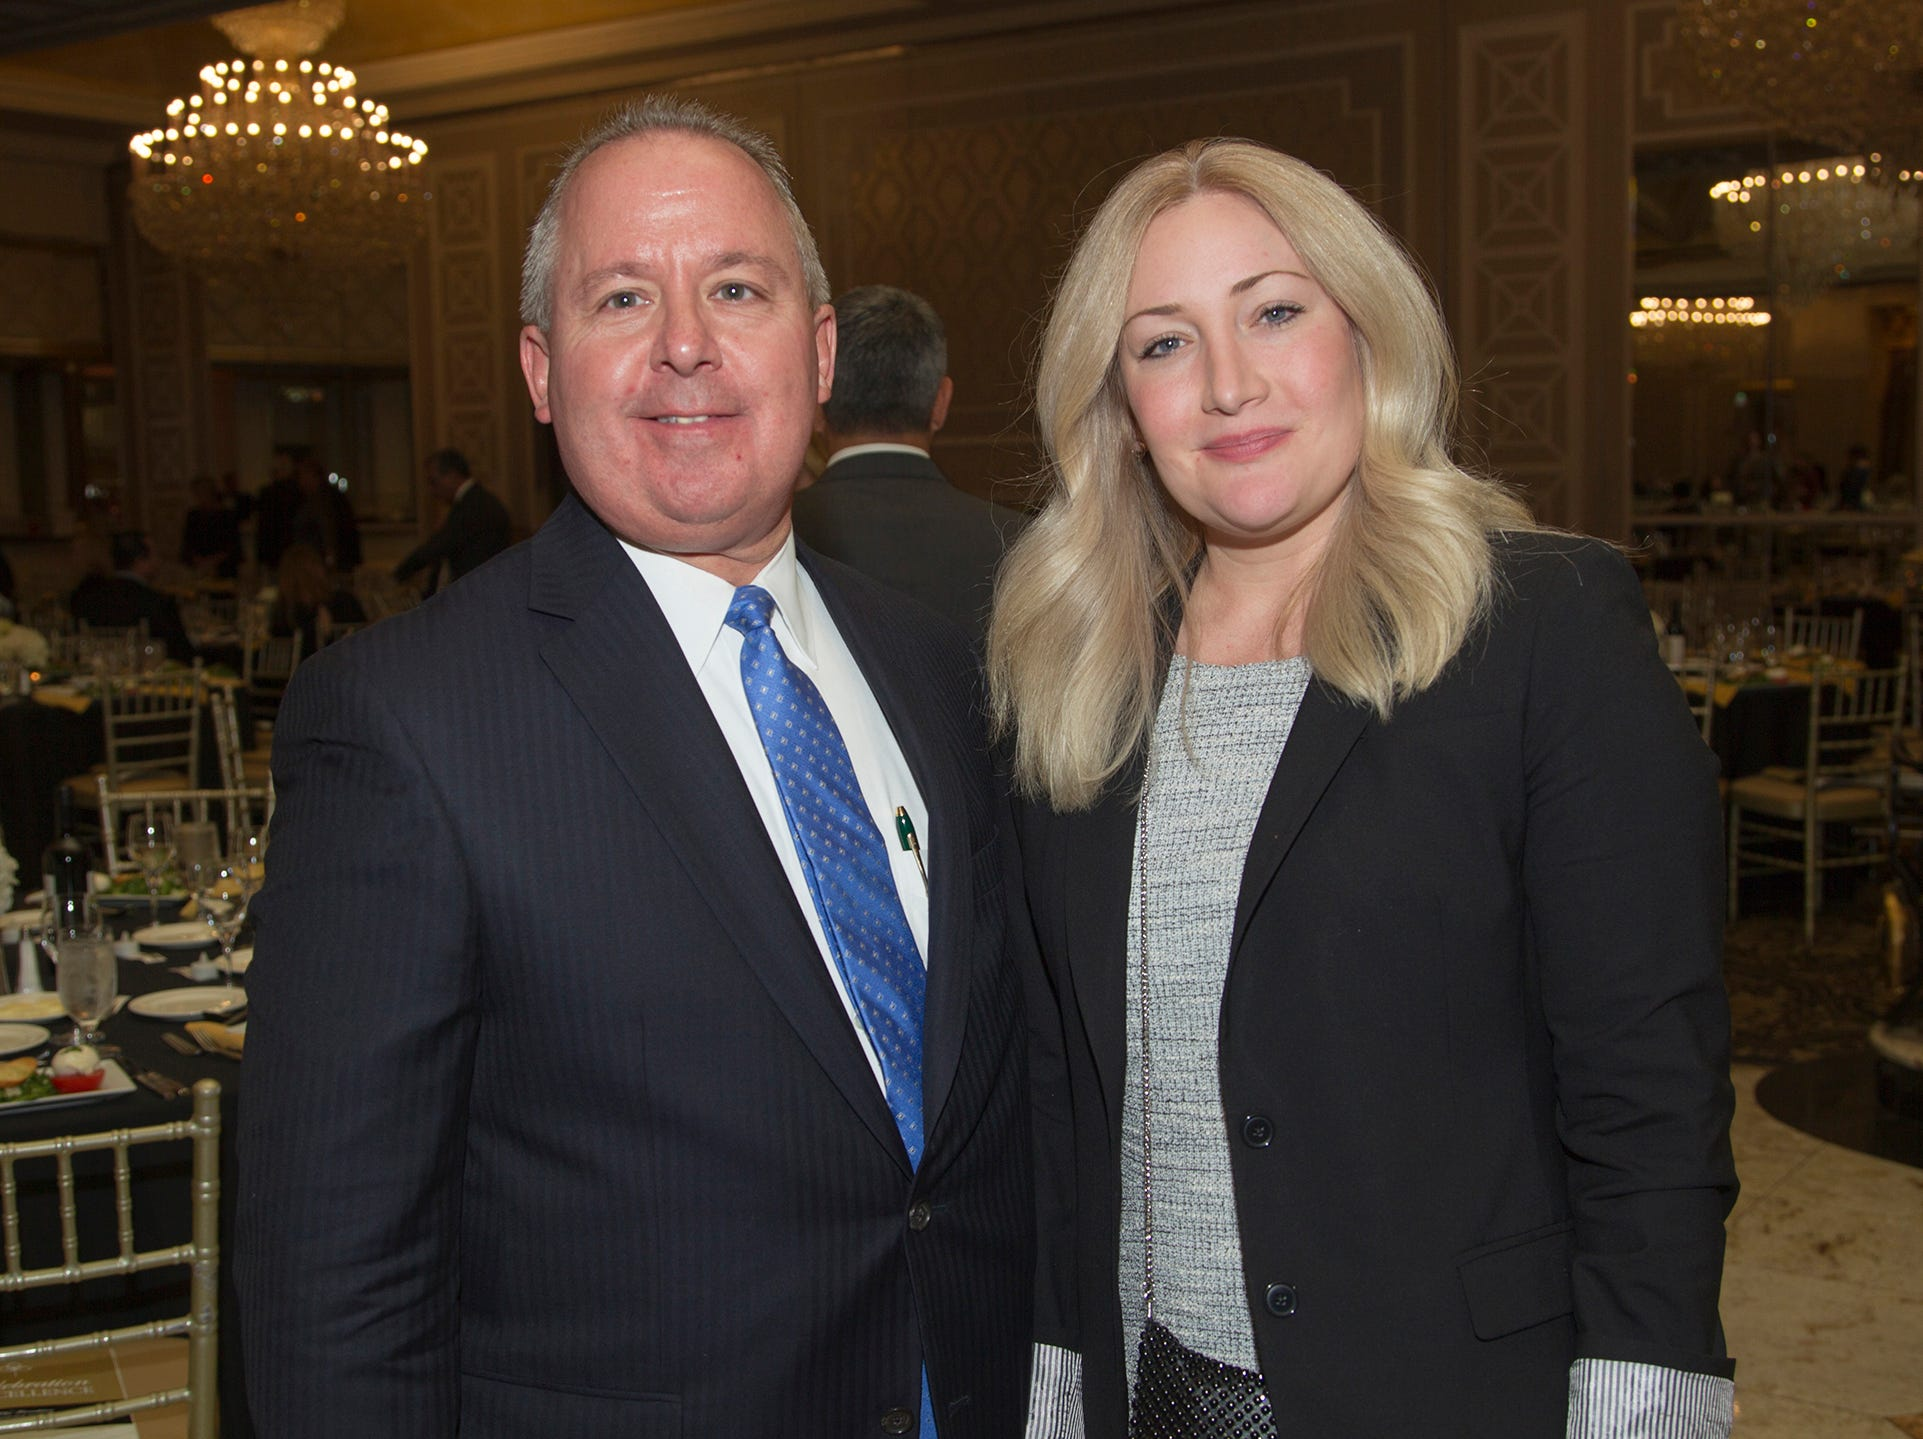 Paul Borovskis, Christine Cookson. Christian Health Care Center held its ' A Celebration of Excellence' gala at the Venetian in Garfield.  10/17/2018